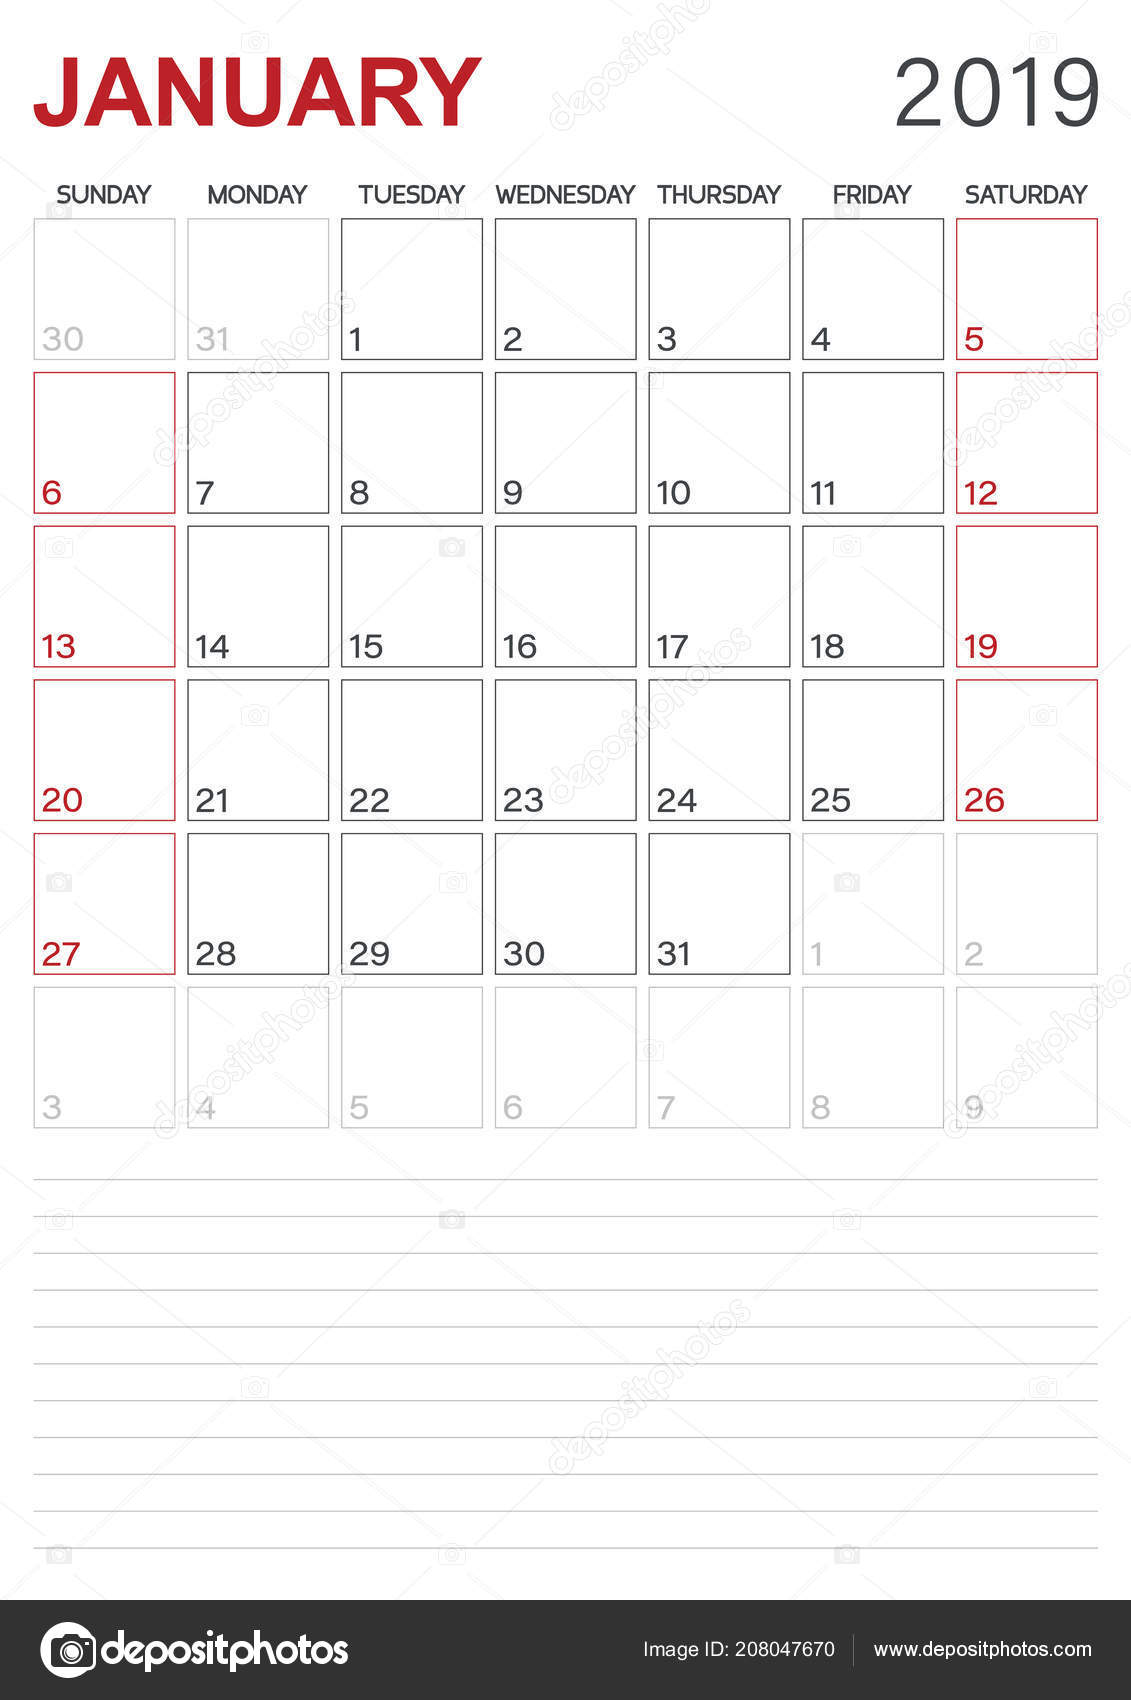 English Calendar 2019 Monthly Planner Calendar January 2019 Week